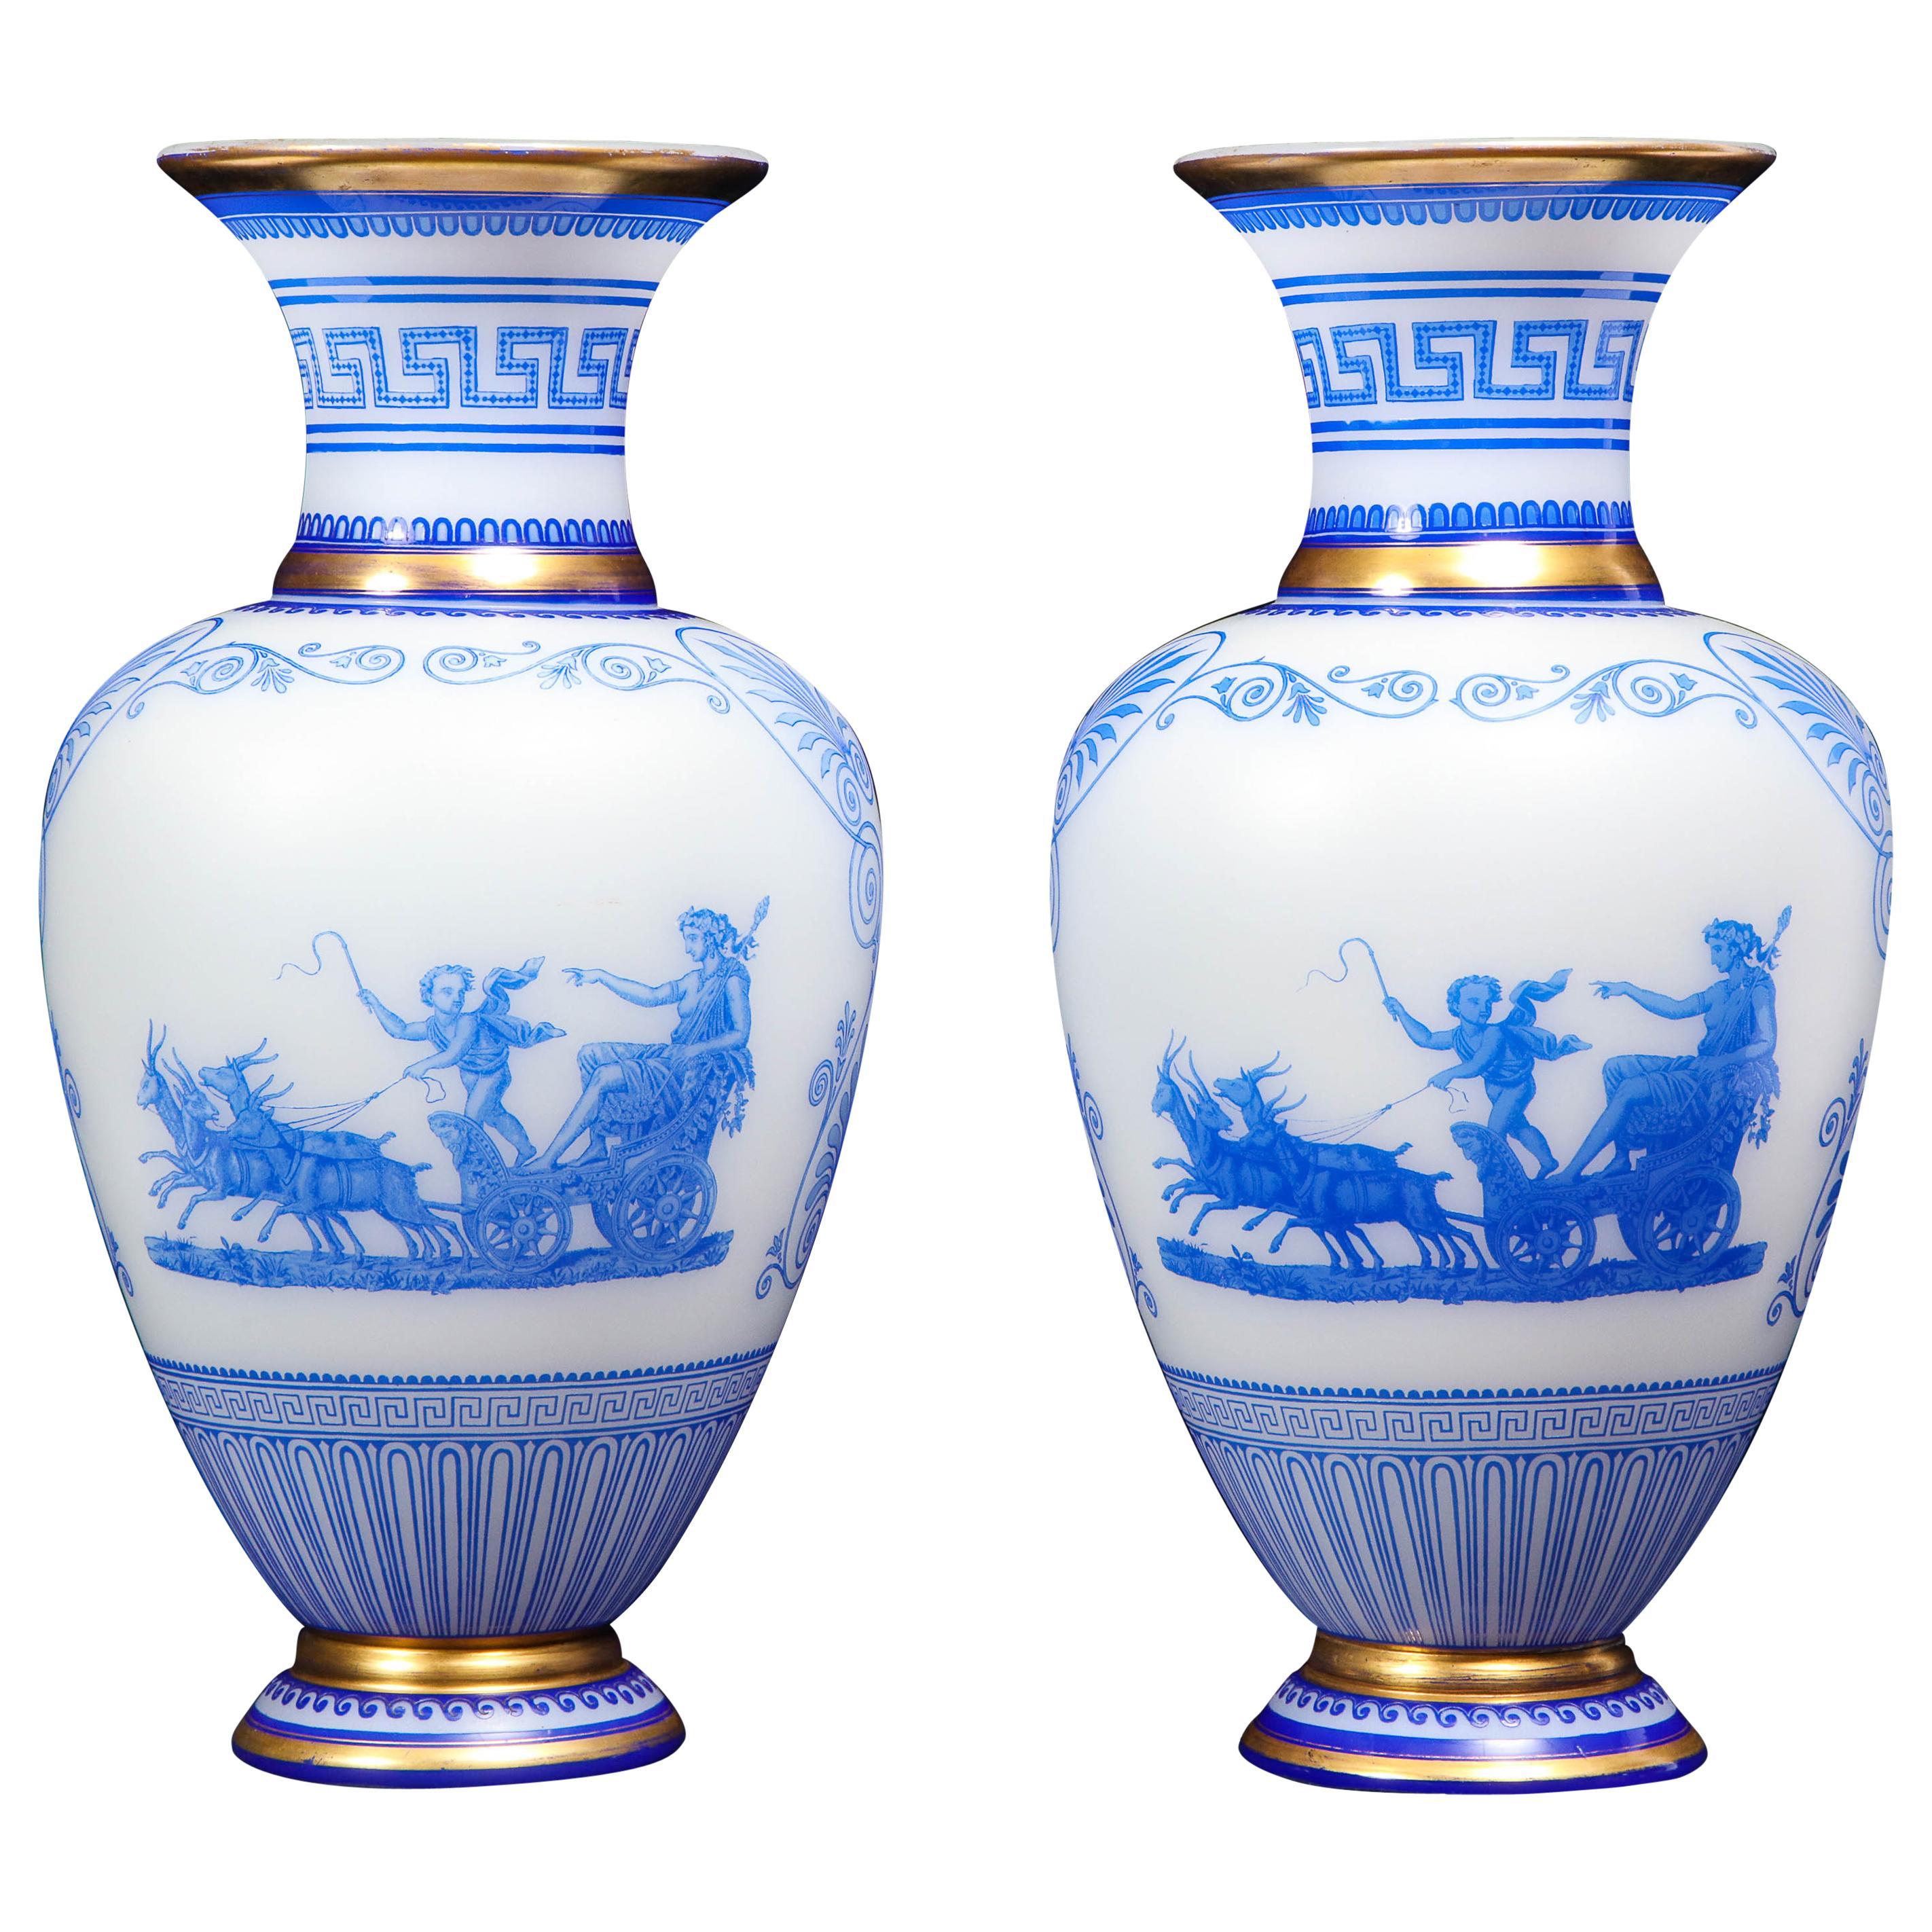 Pair of Baccarat Acid-Cameo Double-Overlay Blue-Cased White Opaline Glass Vases